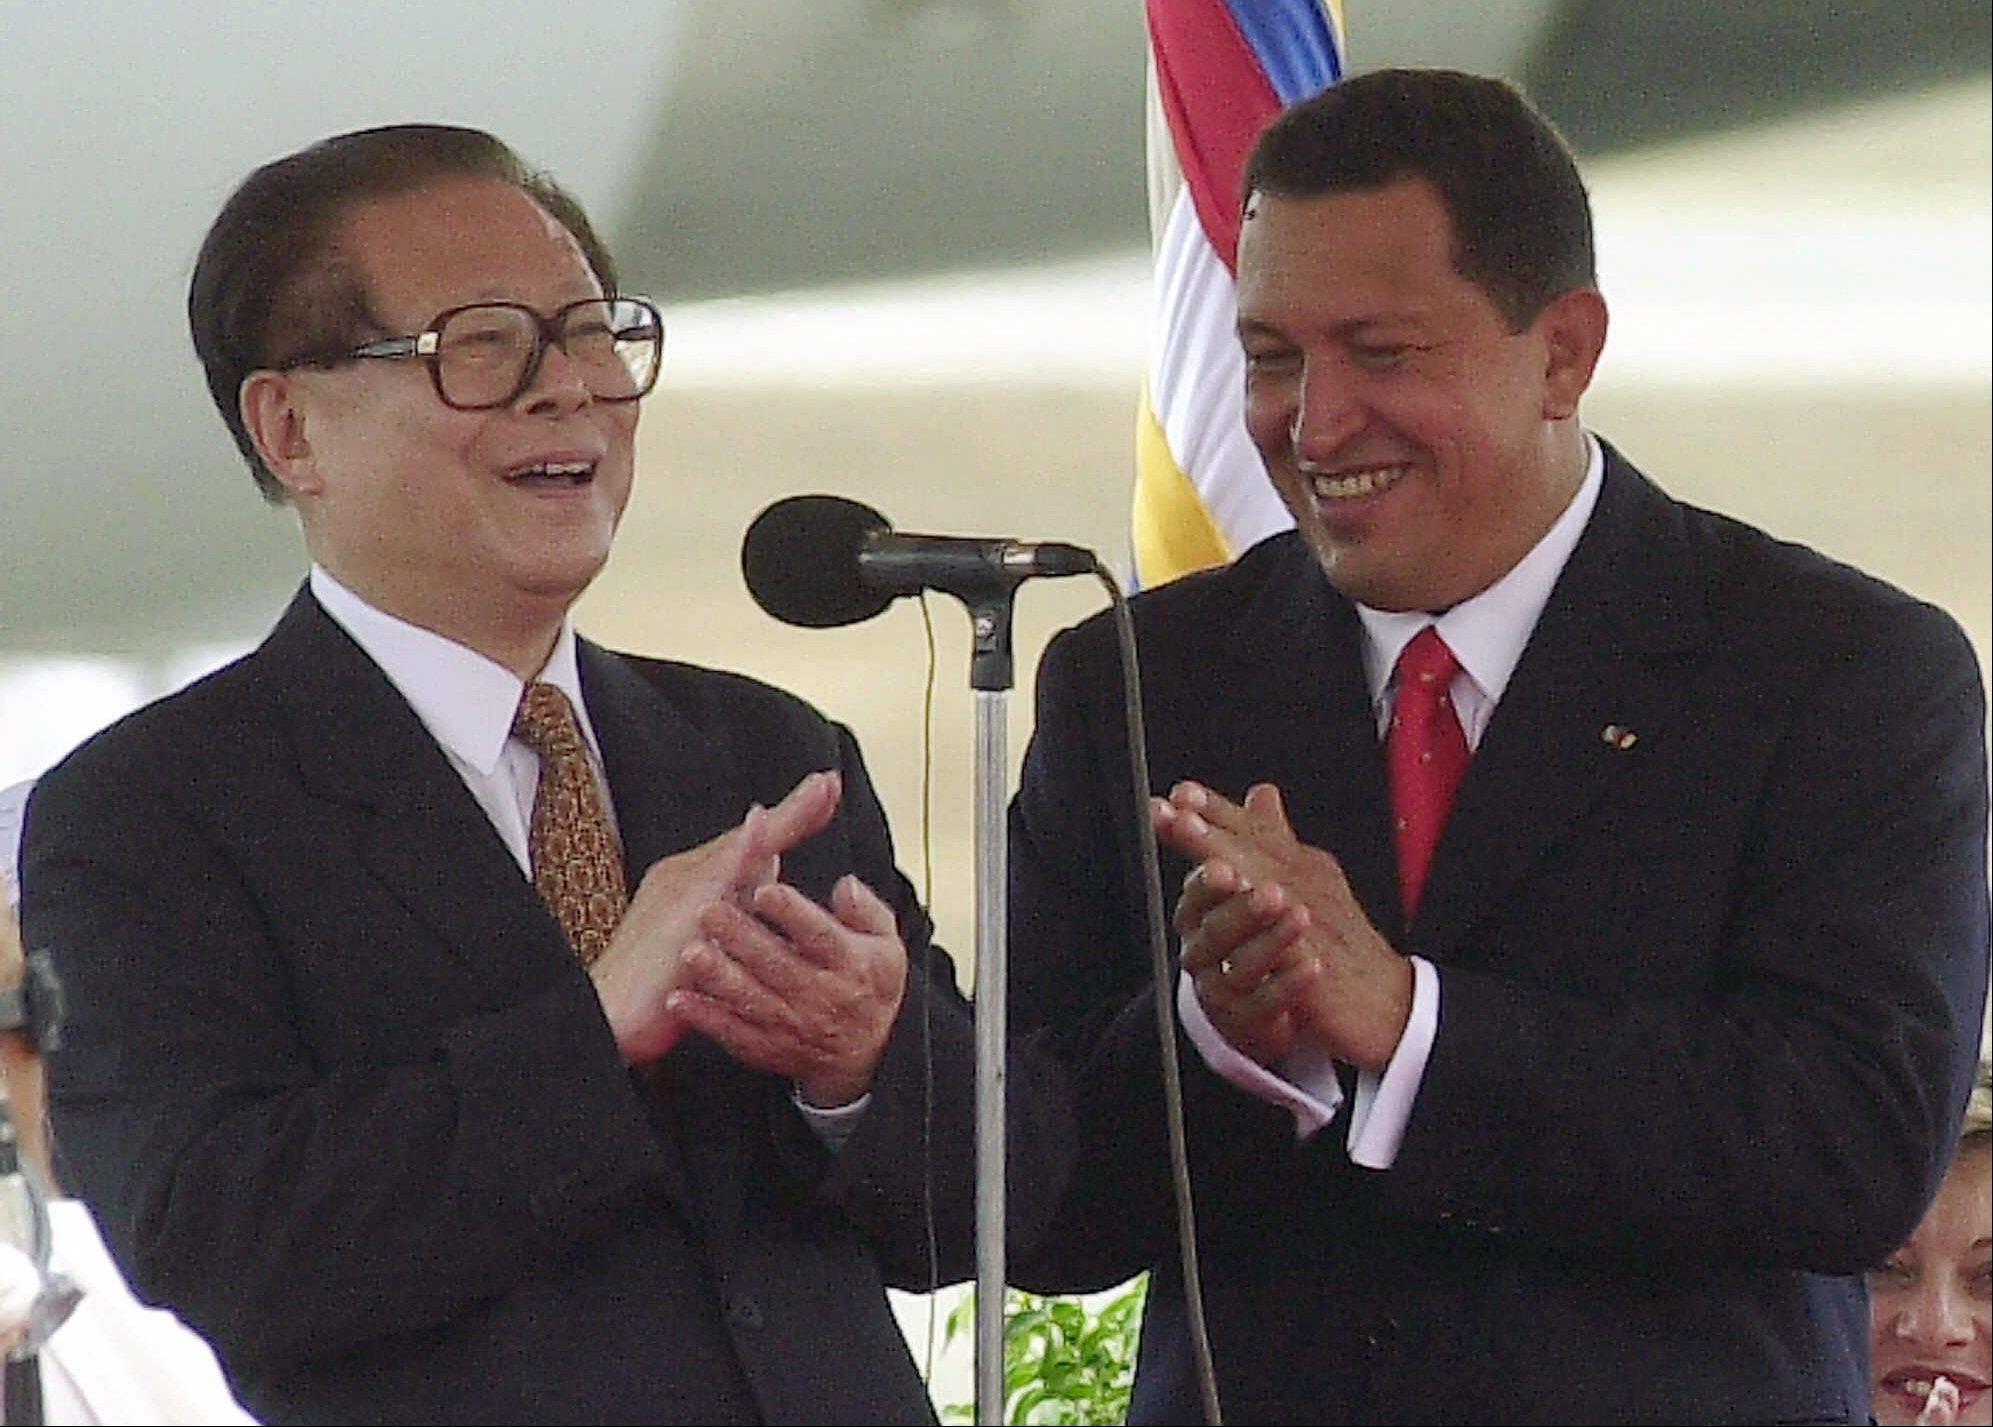 In this April 15, 2001 file photo, China's President Jiang Zemin, left, and Venezuela's President Hugo Chavez applaud during a welcome ceremony at Simon Bolivar International Airport in Maiquetia, Venezuela.